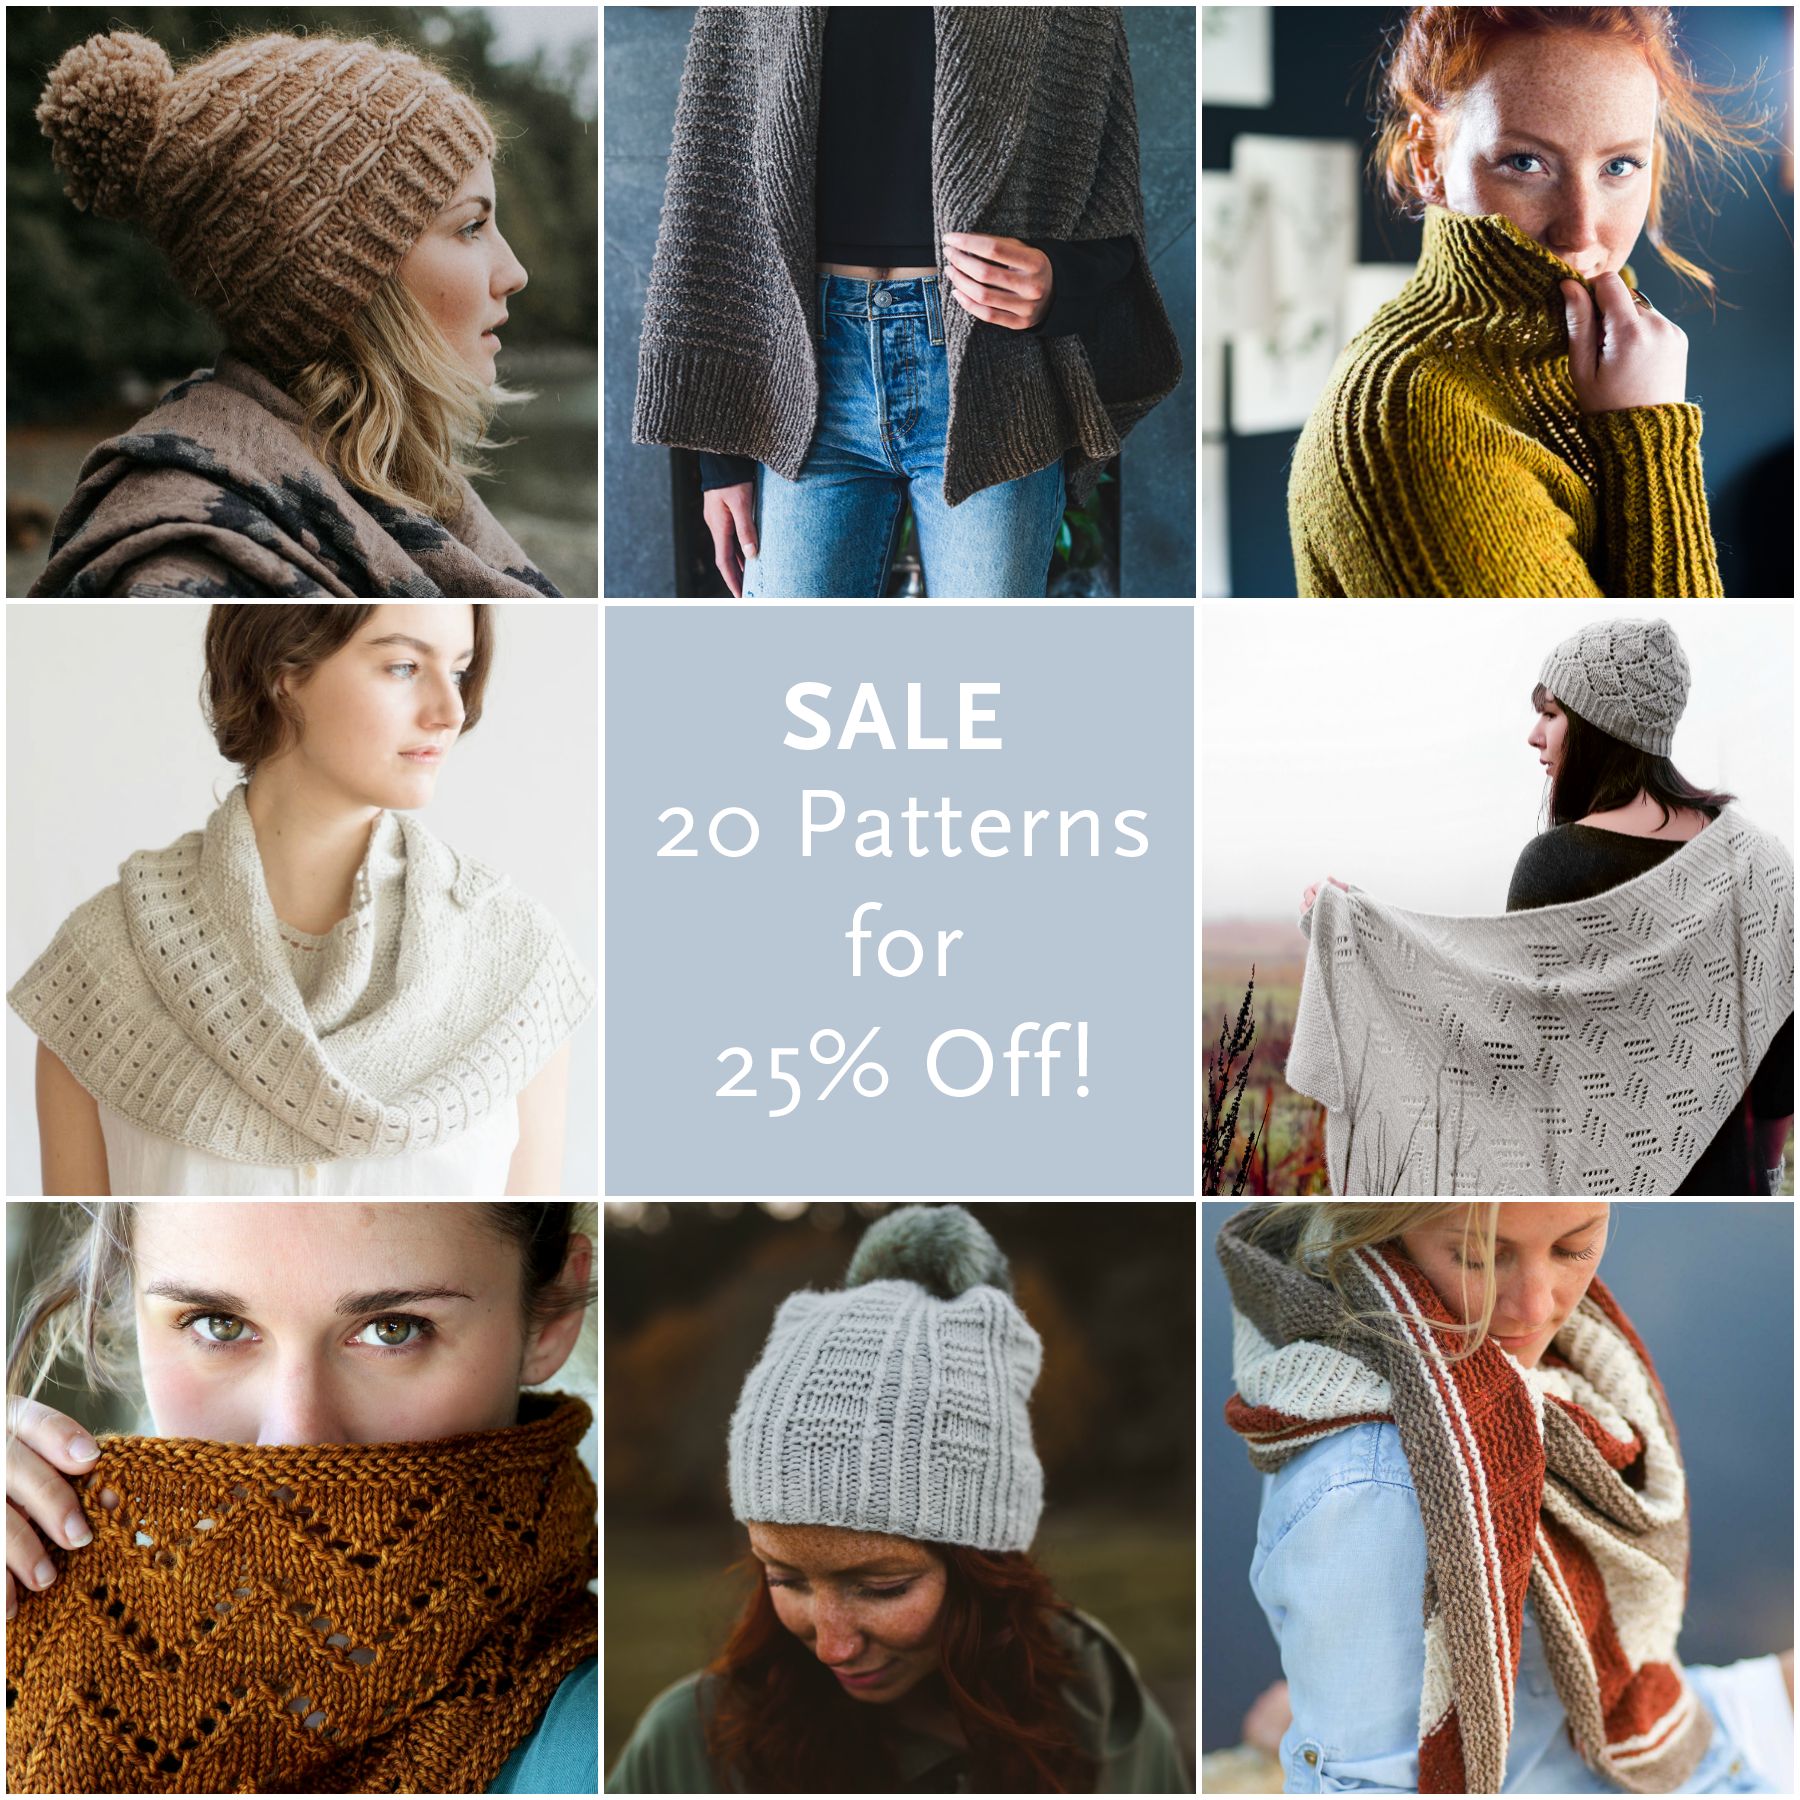 3e49b96c91b SAVE 25% ON 2O PATTERNS - INDIE DESIGN GIFT-A-LONG